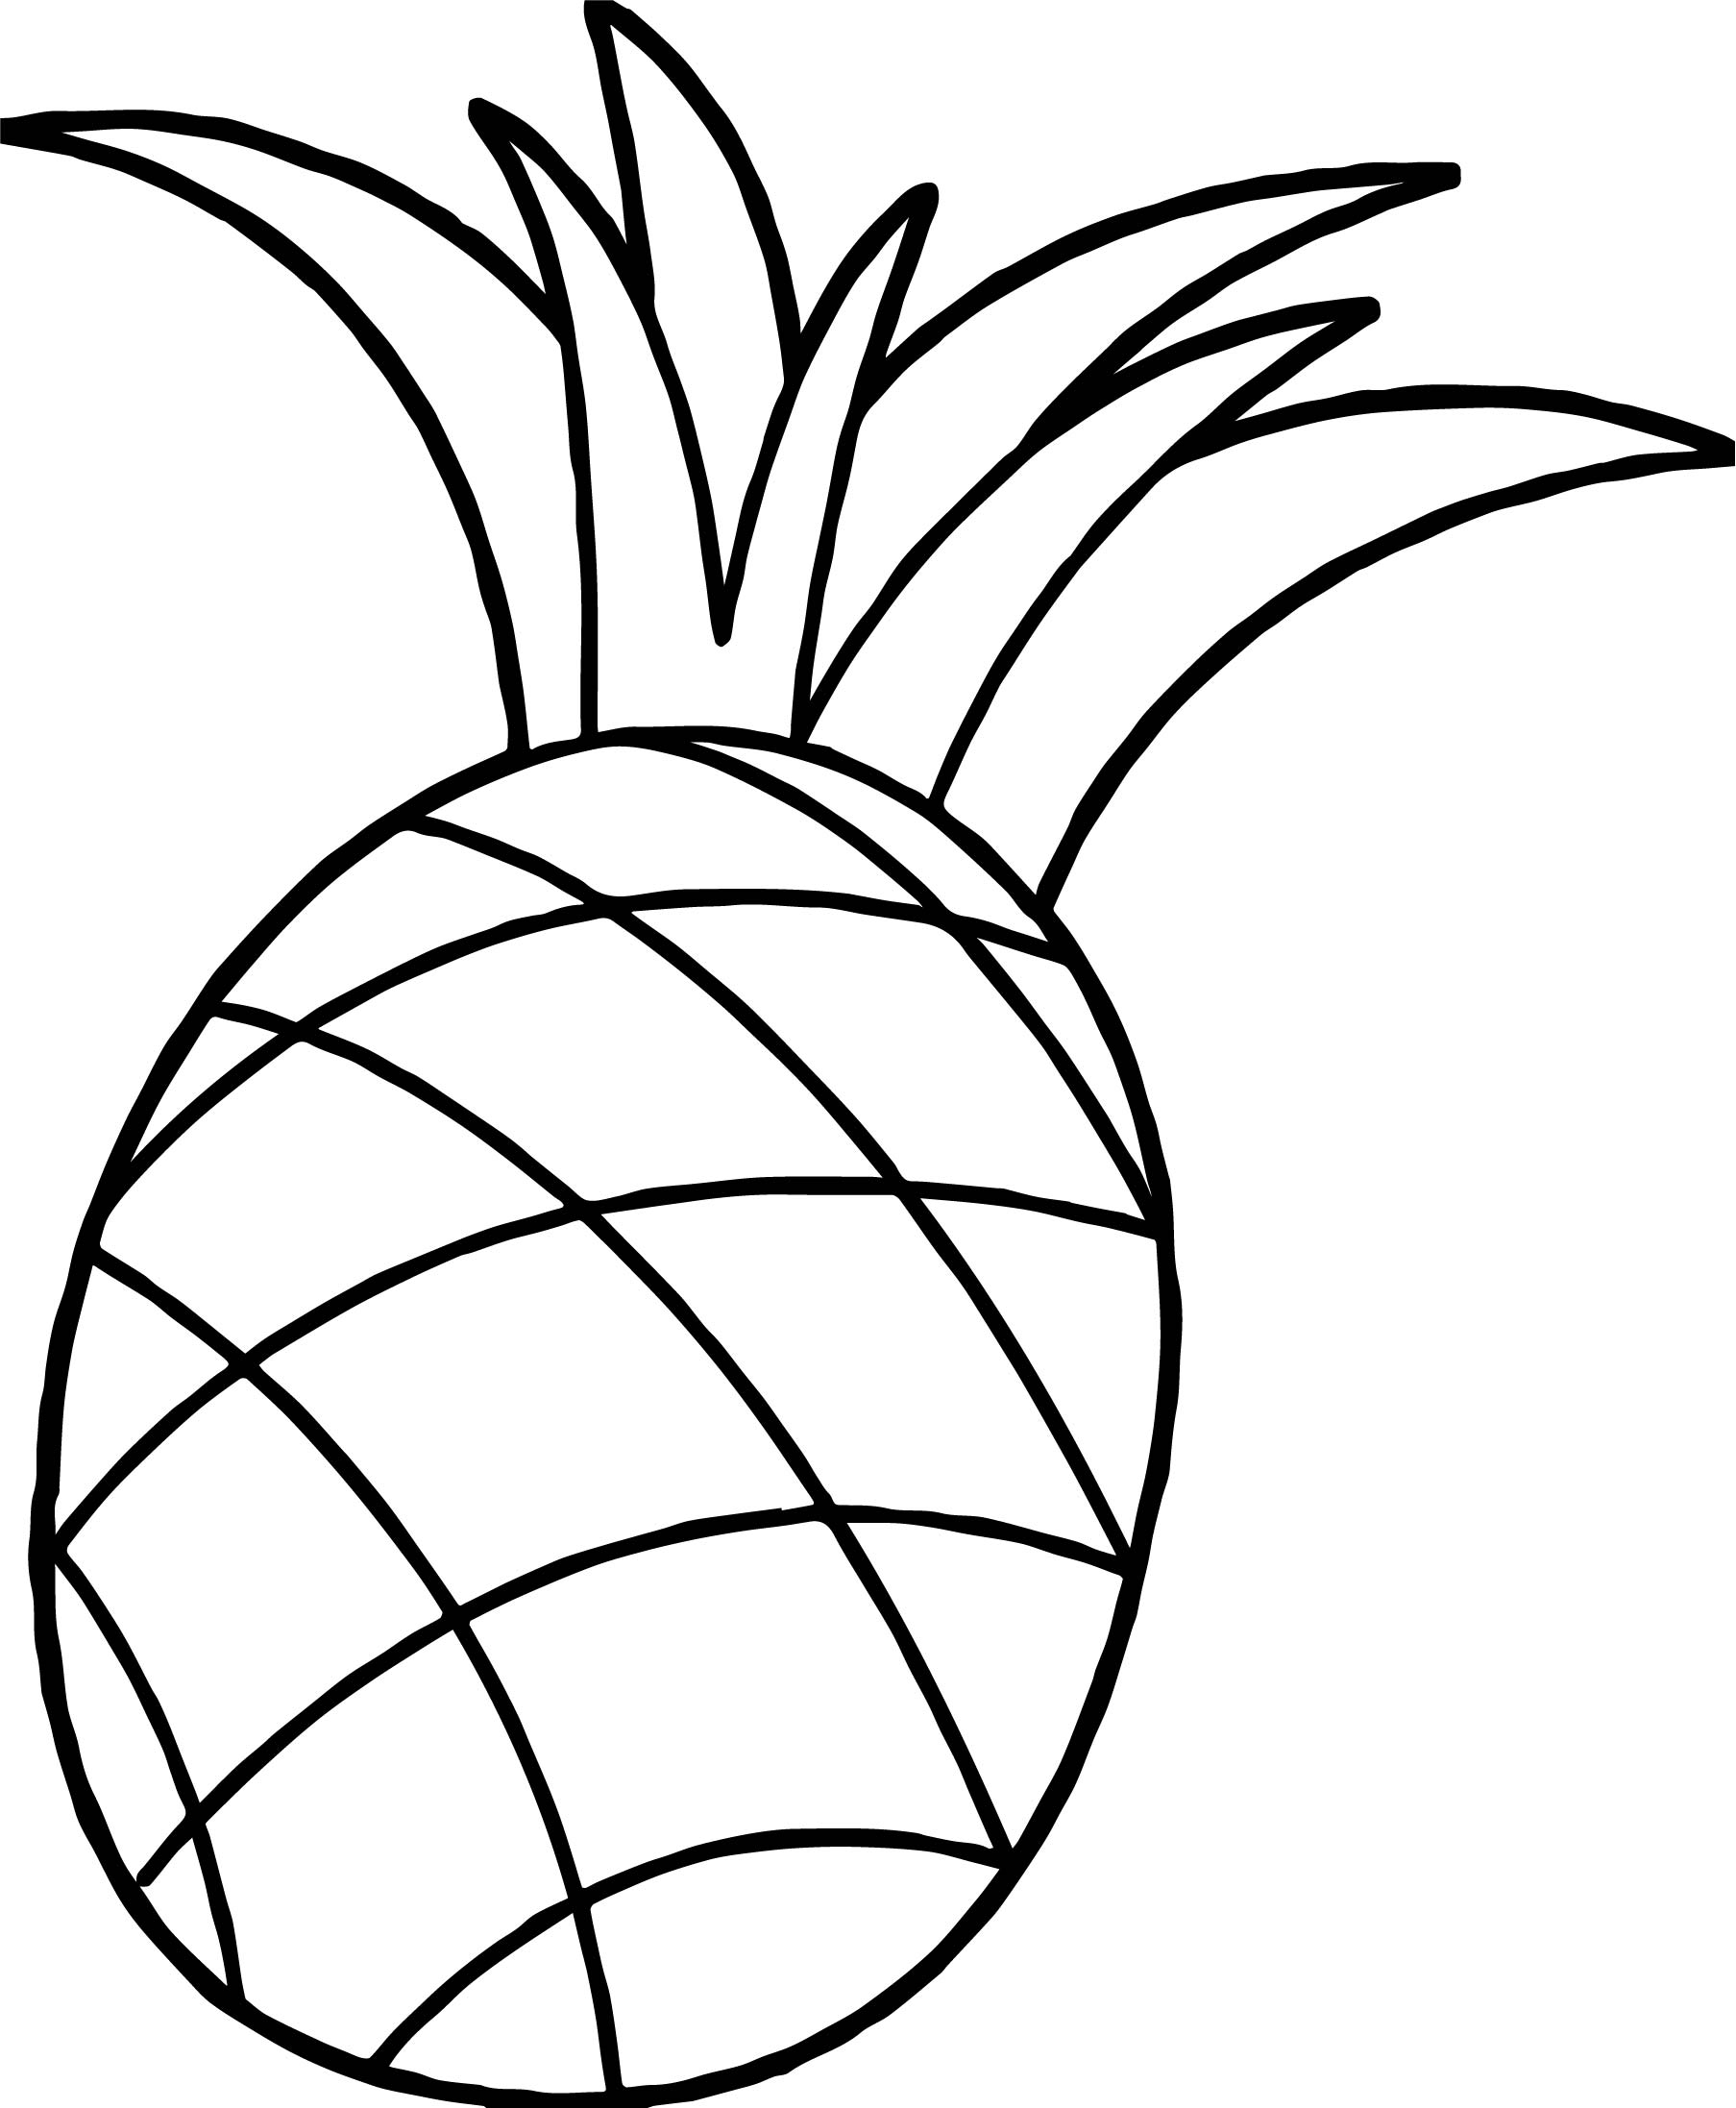 One Pineapple Coloring Page